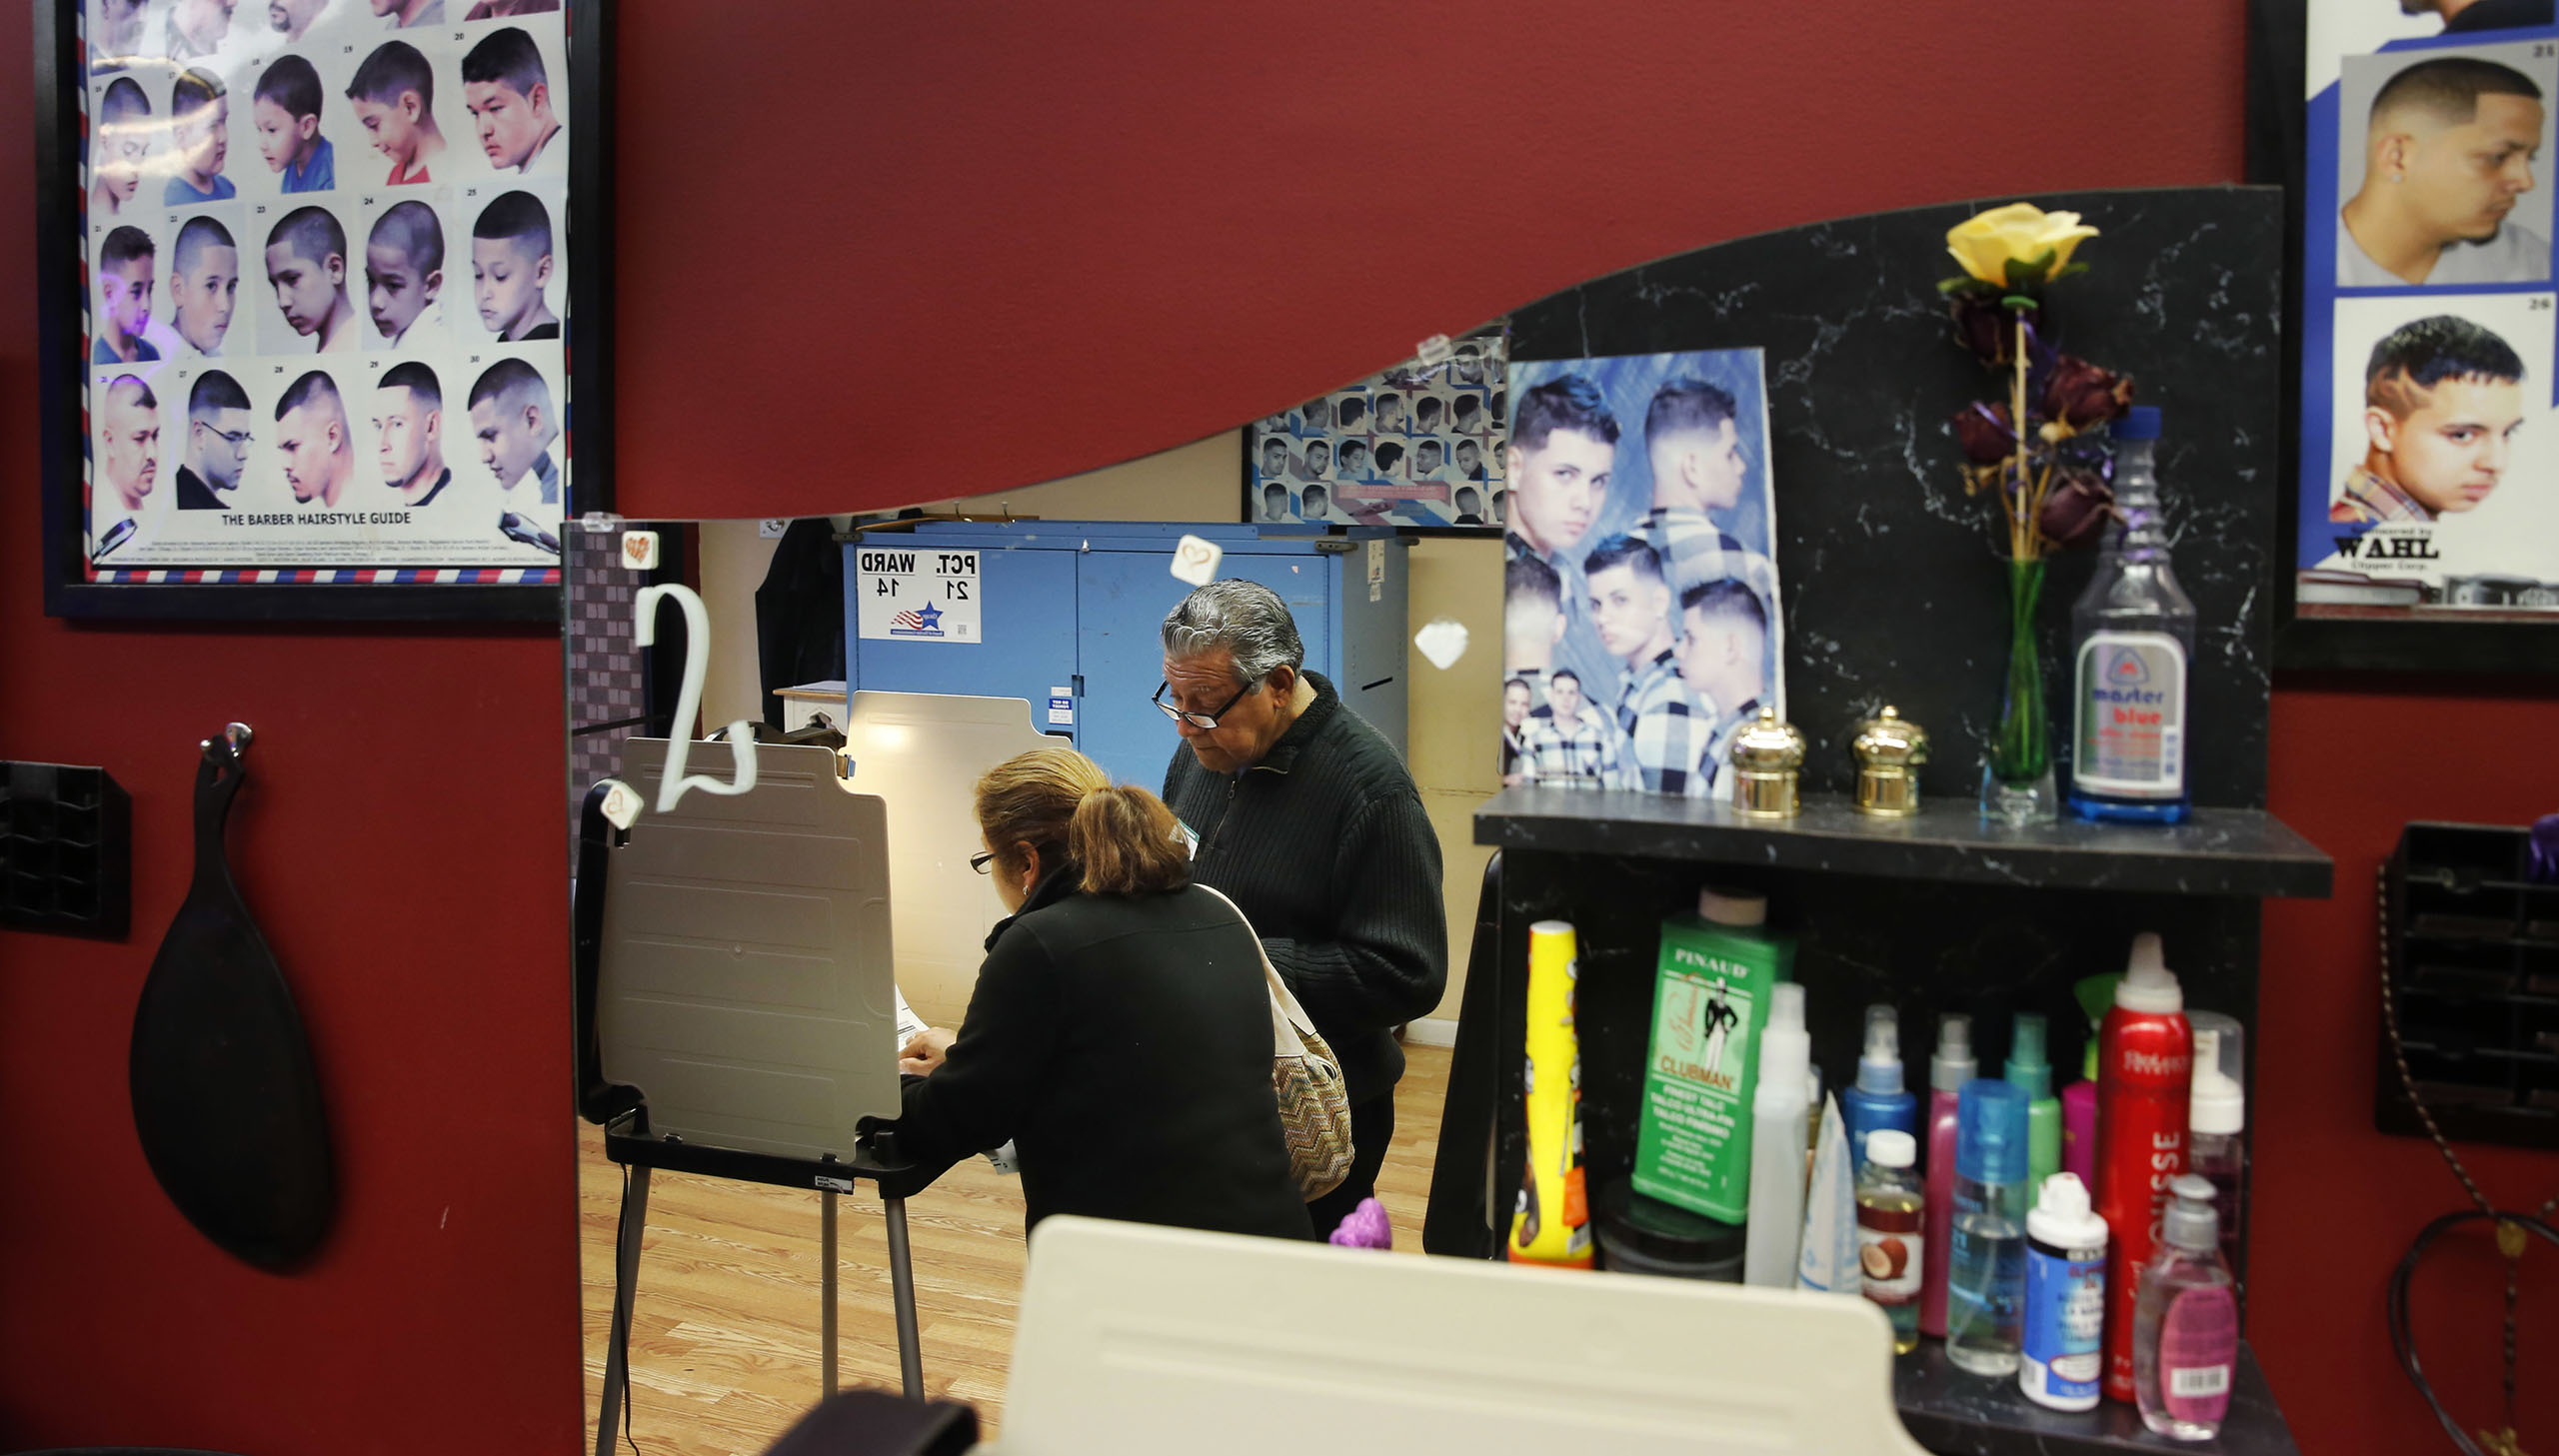 Democratic polling judge John Ramirez, right, is reflected in a mirror as he assists a voter as she fills out her ballot at Delia's Beauty Salon on Nov. 8, 2016, in Chicago.